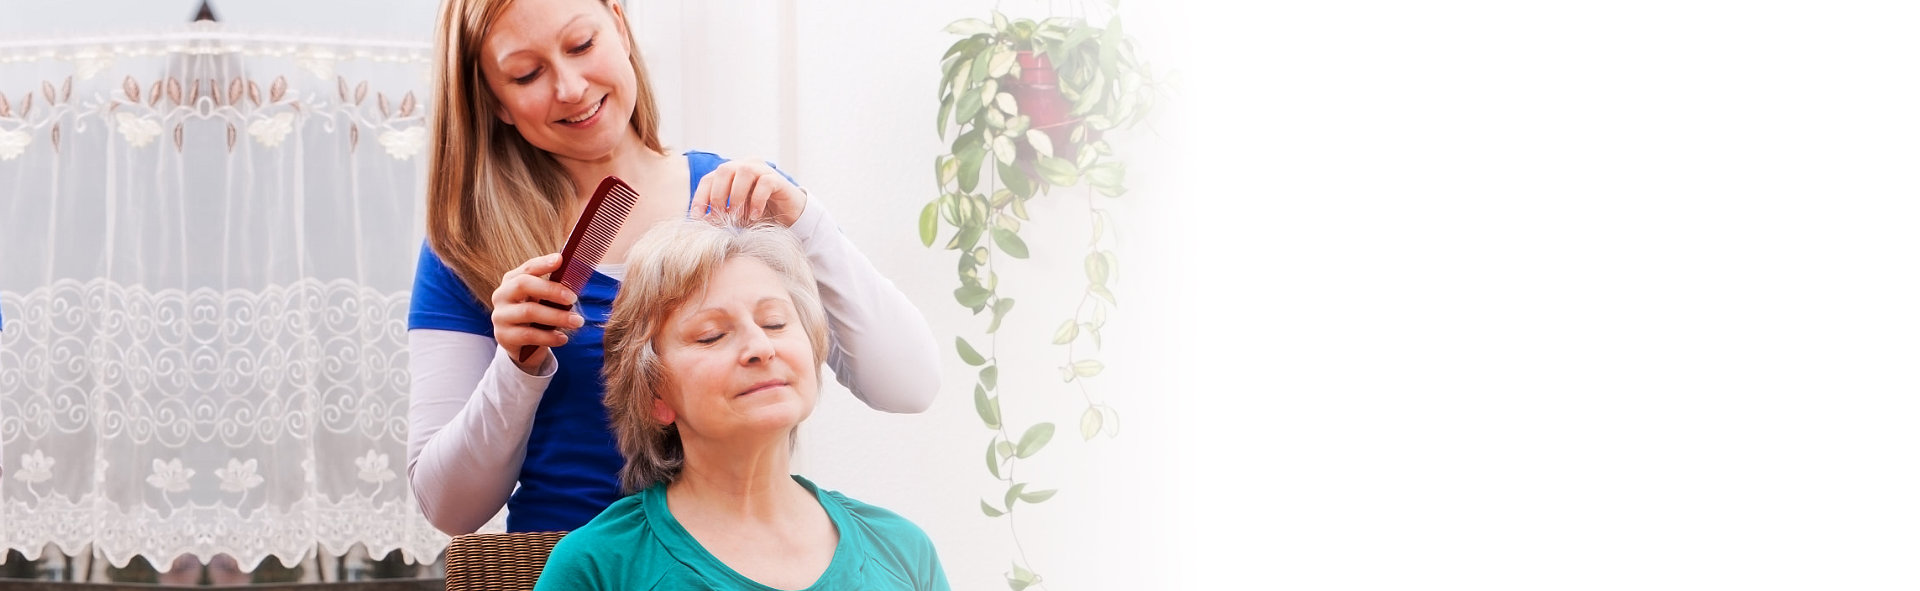 caregiver grooming the hair of an elderly woman